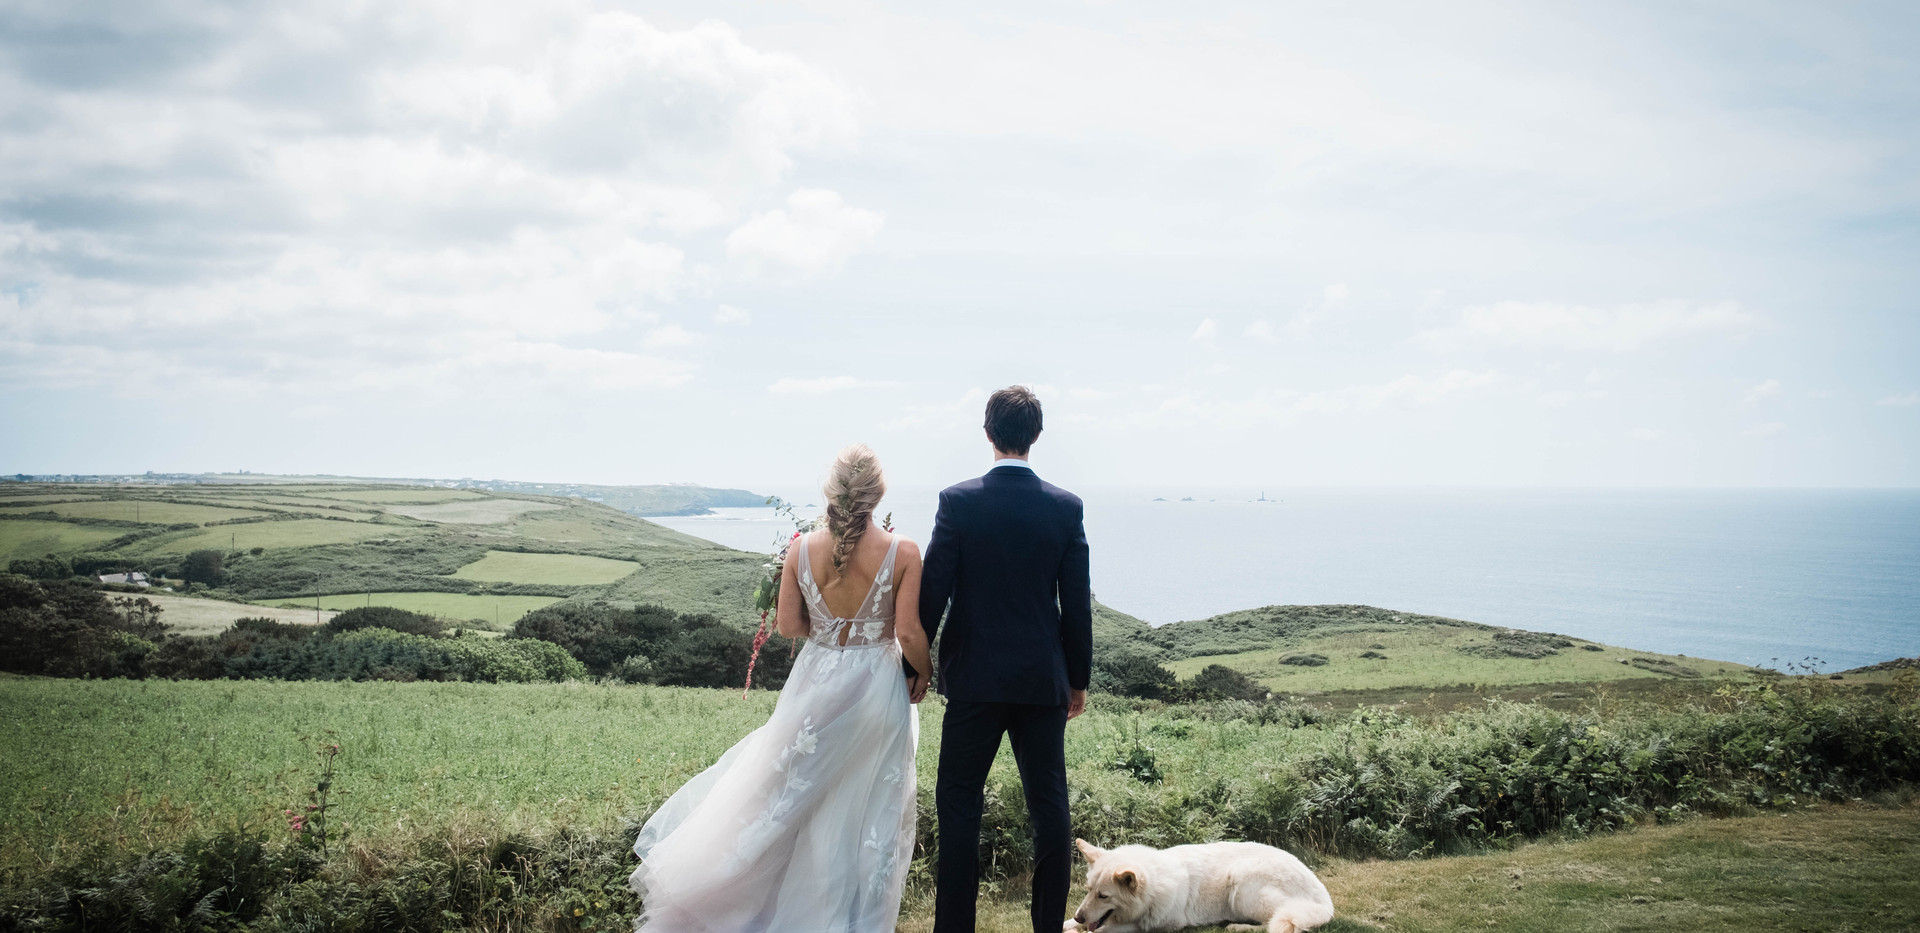 Weddings on the Cornish Coast.